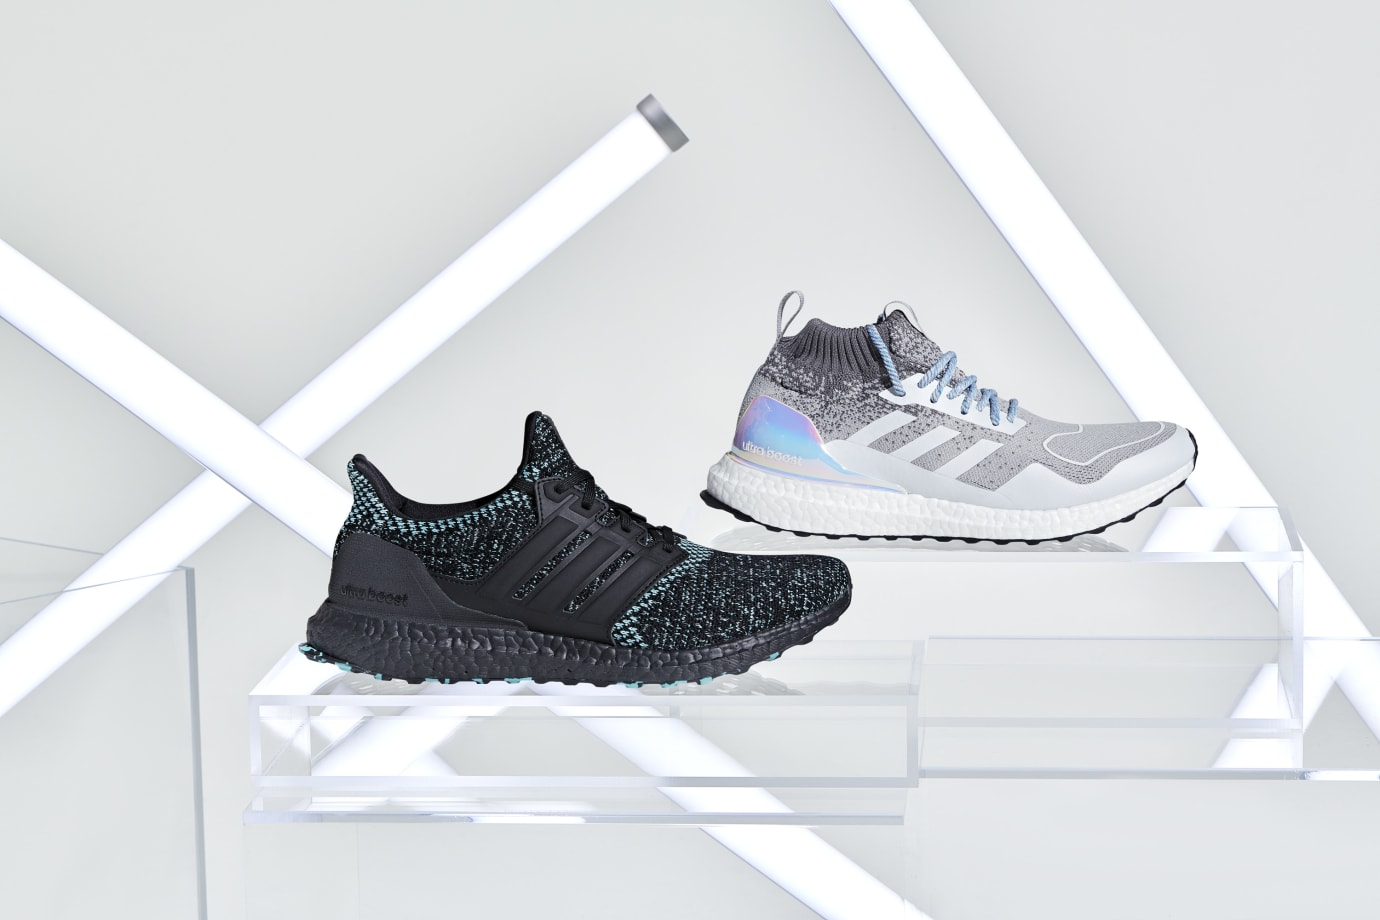 f68dbd44968c4 Image via Adidas Adidas Ultra Boost 1.0 Collection 2